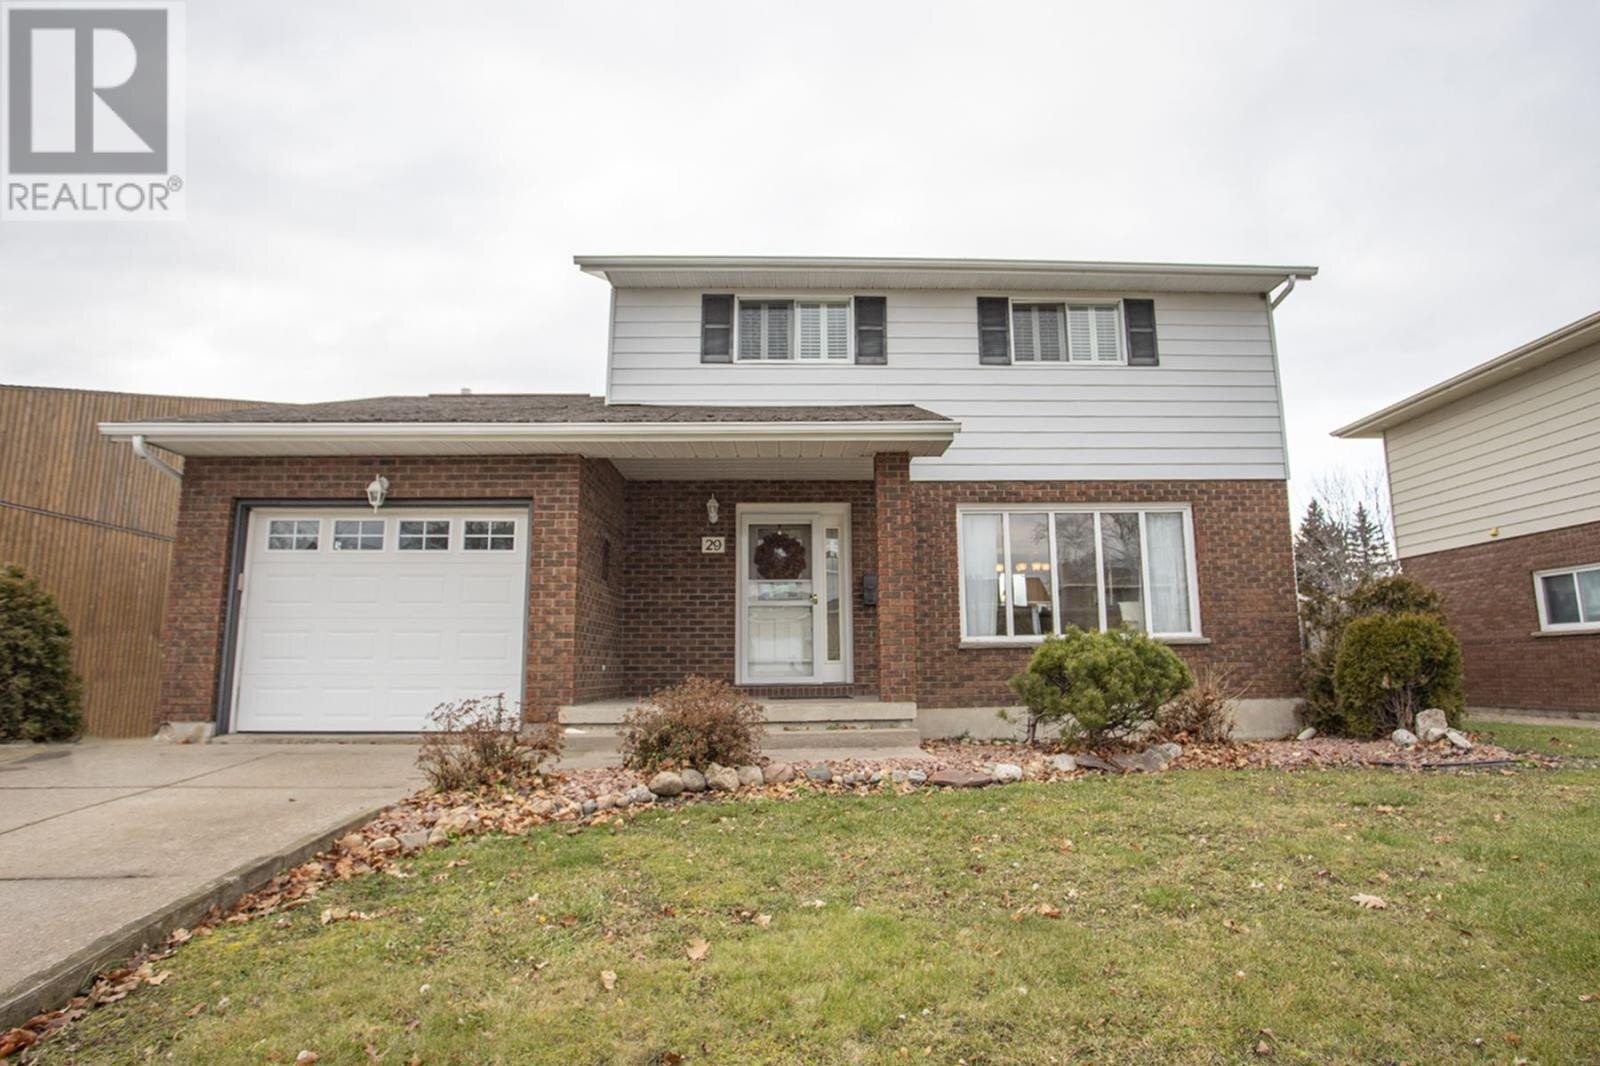 House for sale at 29 Highcrest St Sault Ste. Marie Ontario - MLS: SM130367